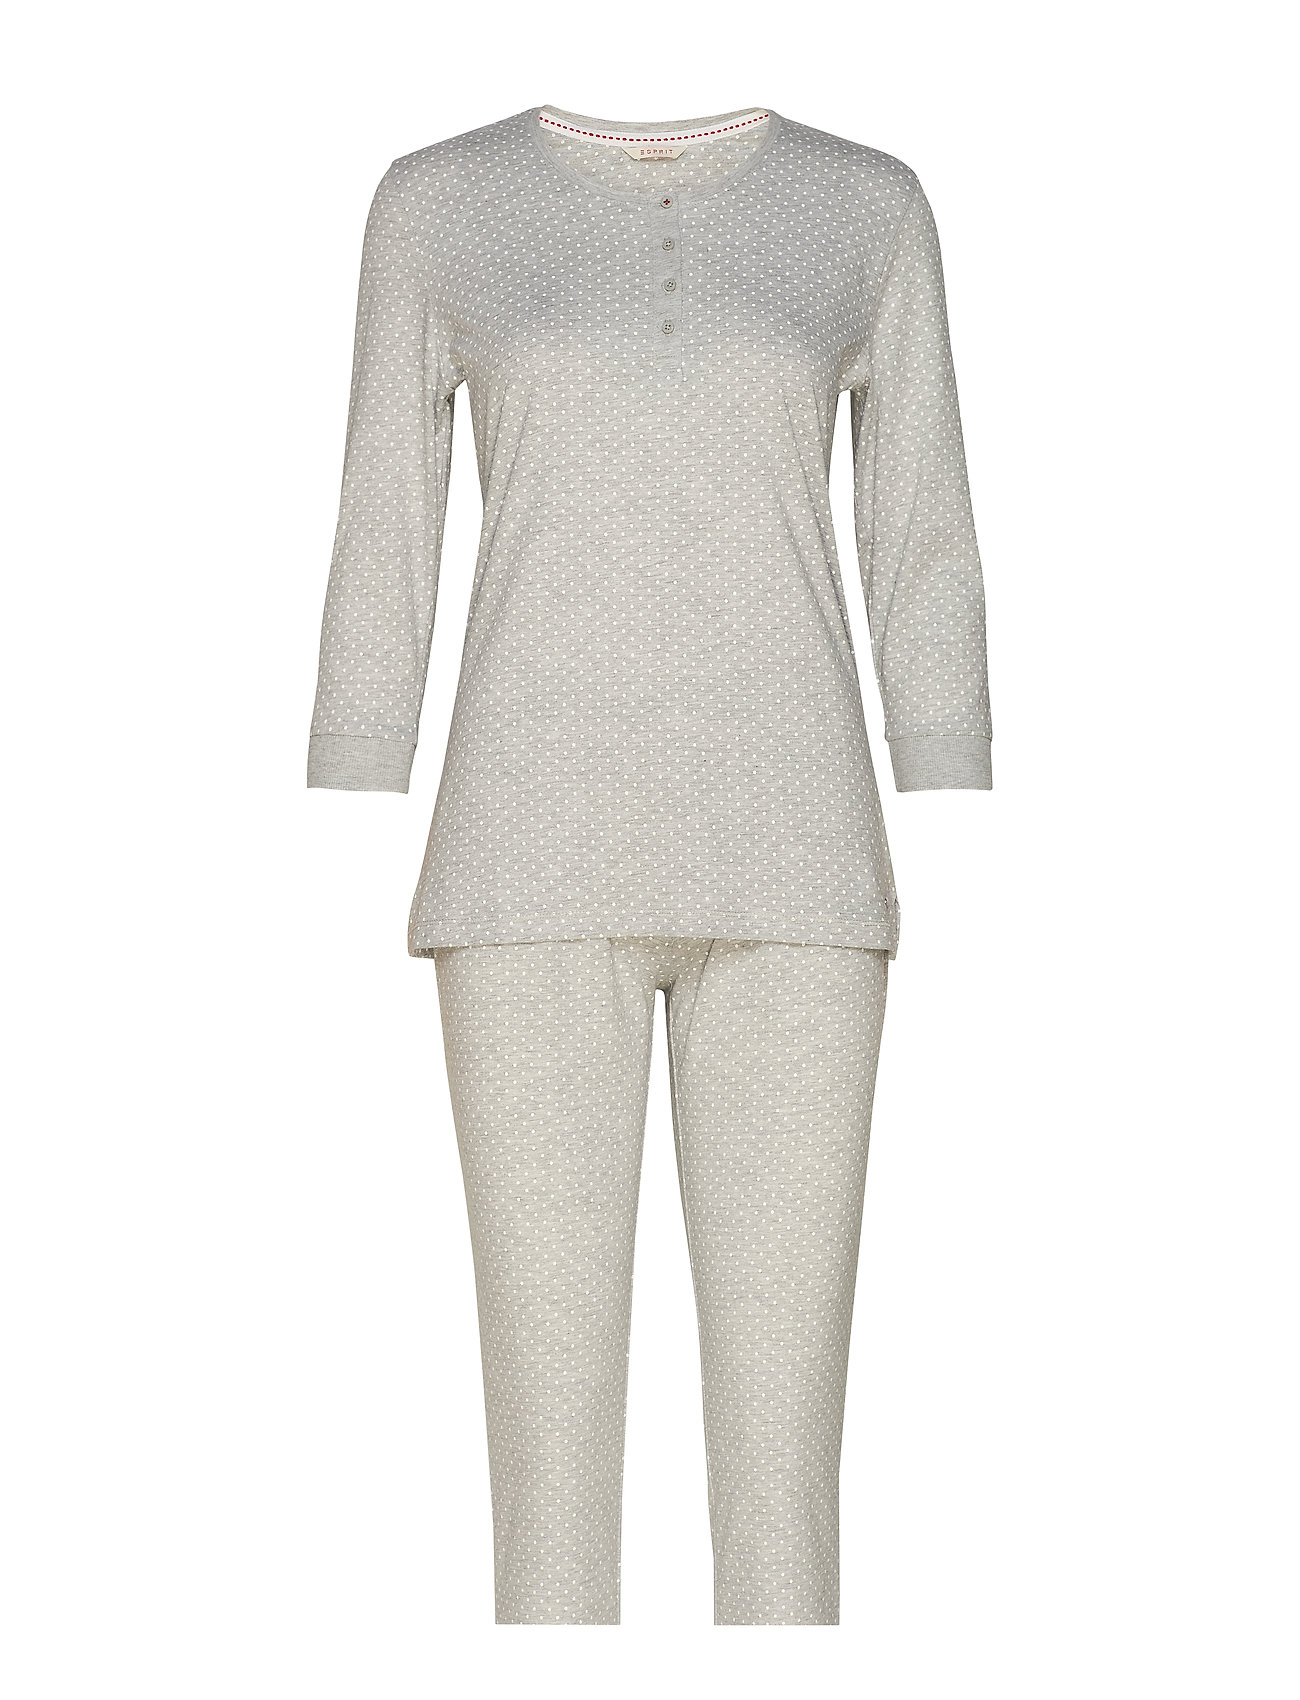 Esprit Bodywear Women Pyjamas - LIGHT GREY